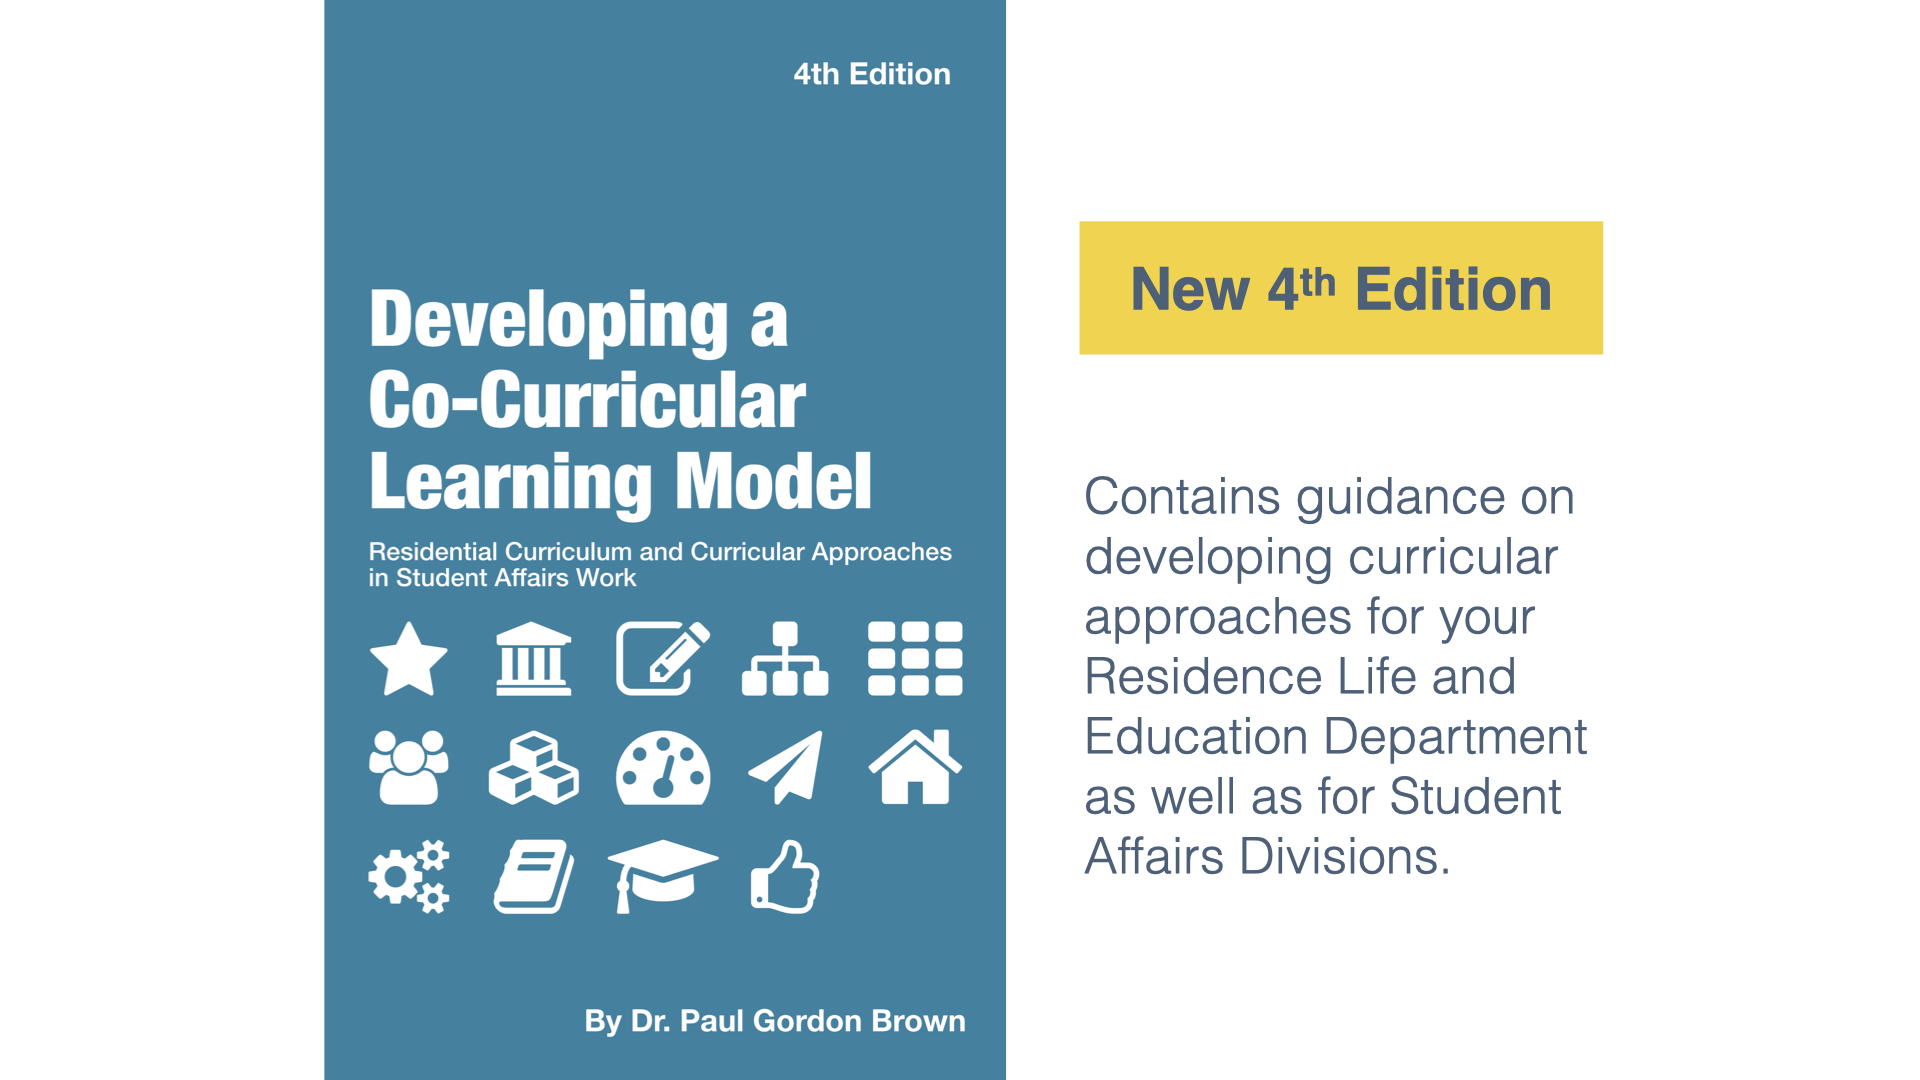 Residential Curriculum and Curricular Approaches Book